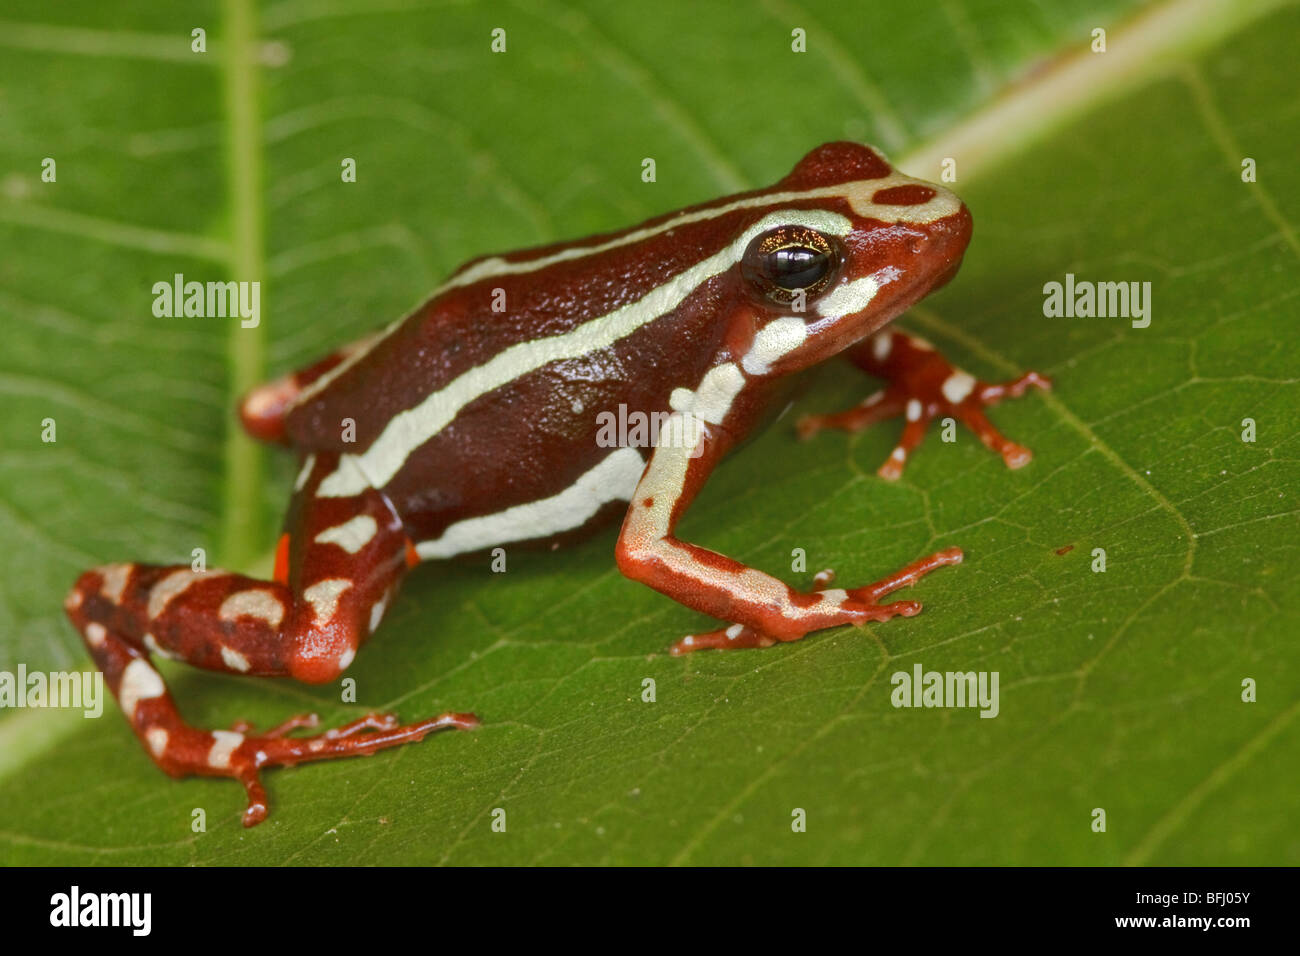 A frog perched on a leaf at Buenaventura Lodge in southwest Ecuador. Stock Photo